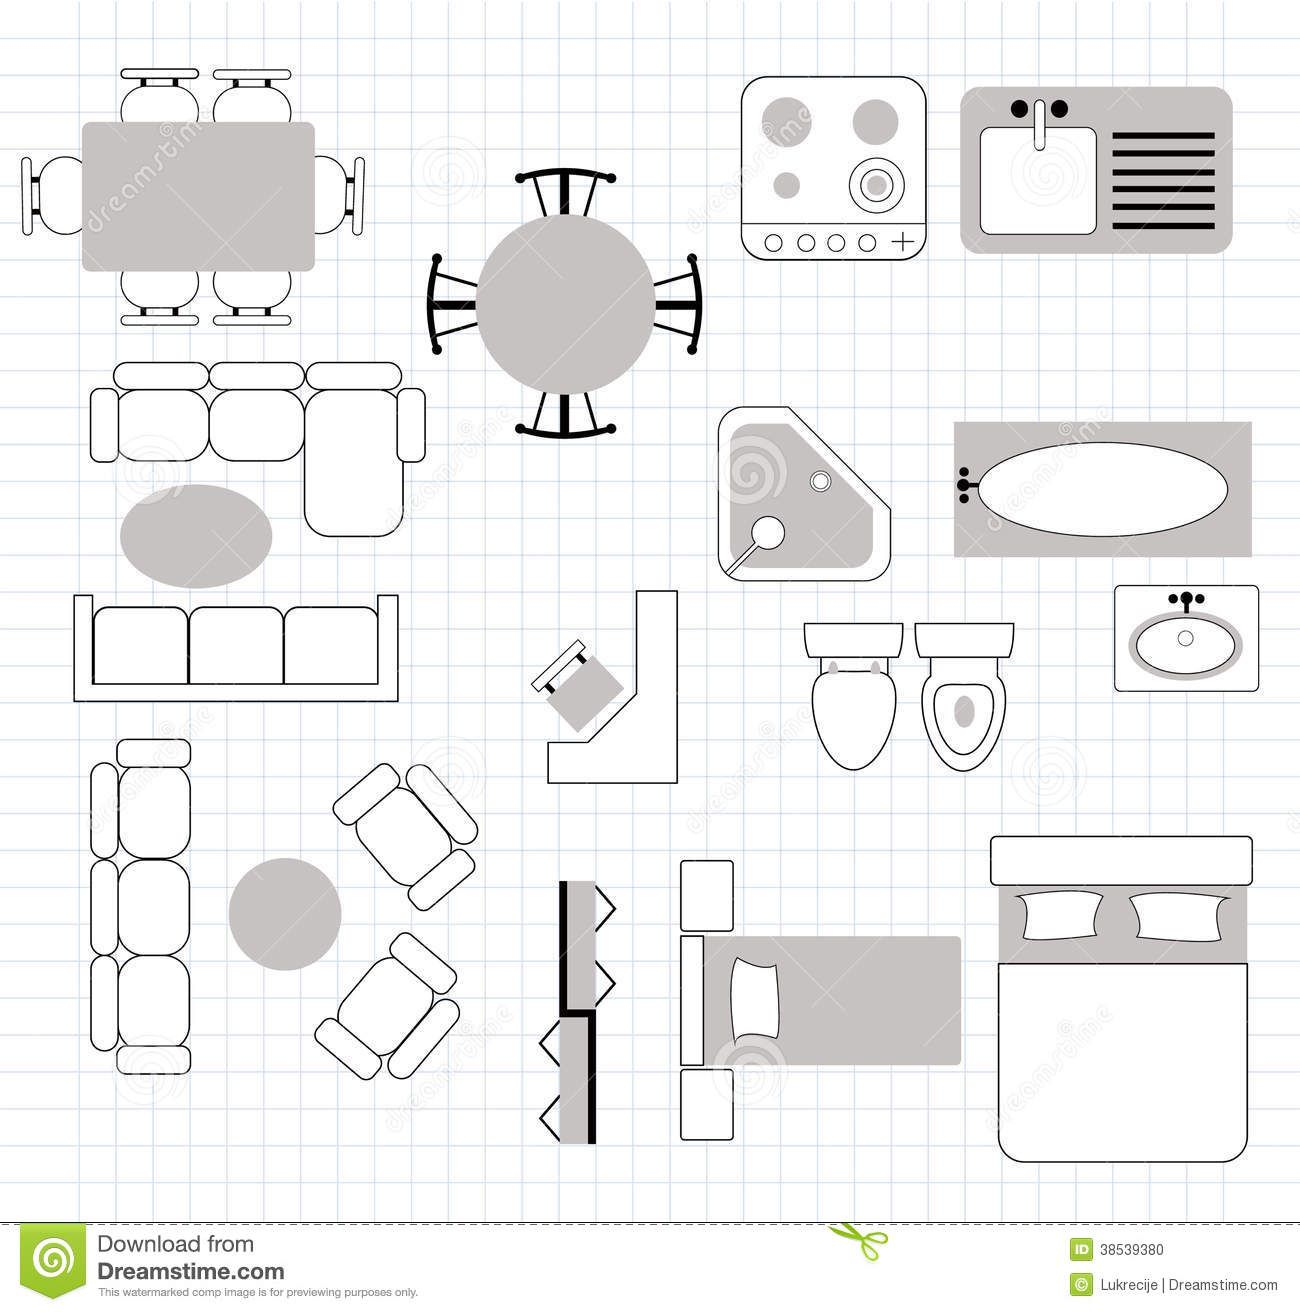 floor plan with furniture stock photo image 38539380 - 28 images - 28 furniture  floor plan stock vector floor plan, floor plan with furniture stock photo  ...